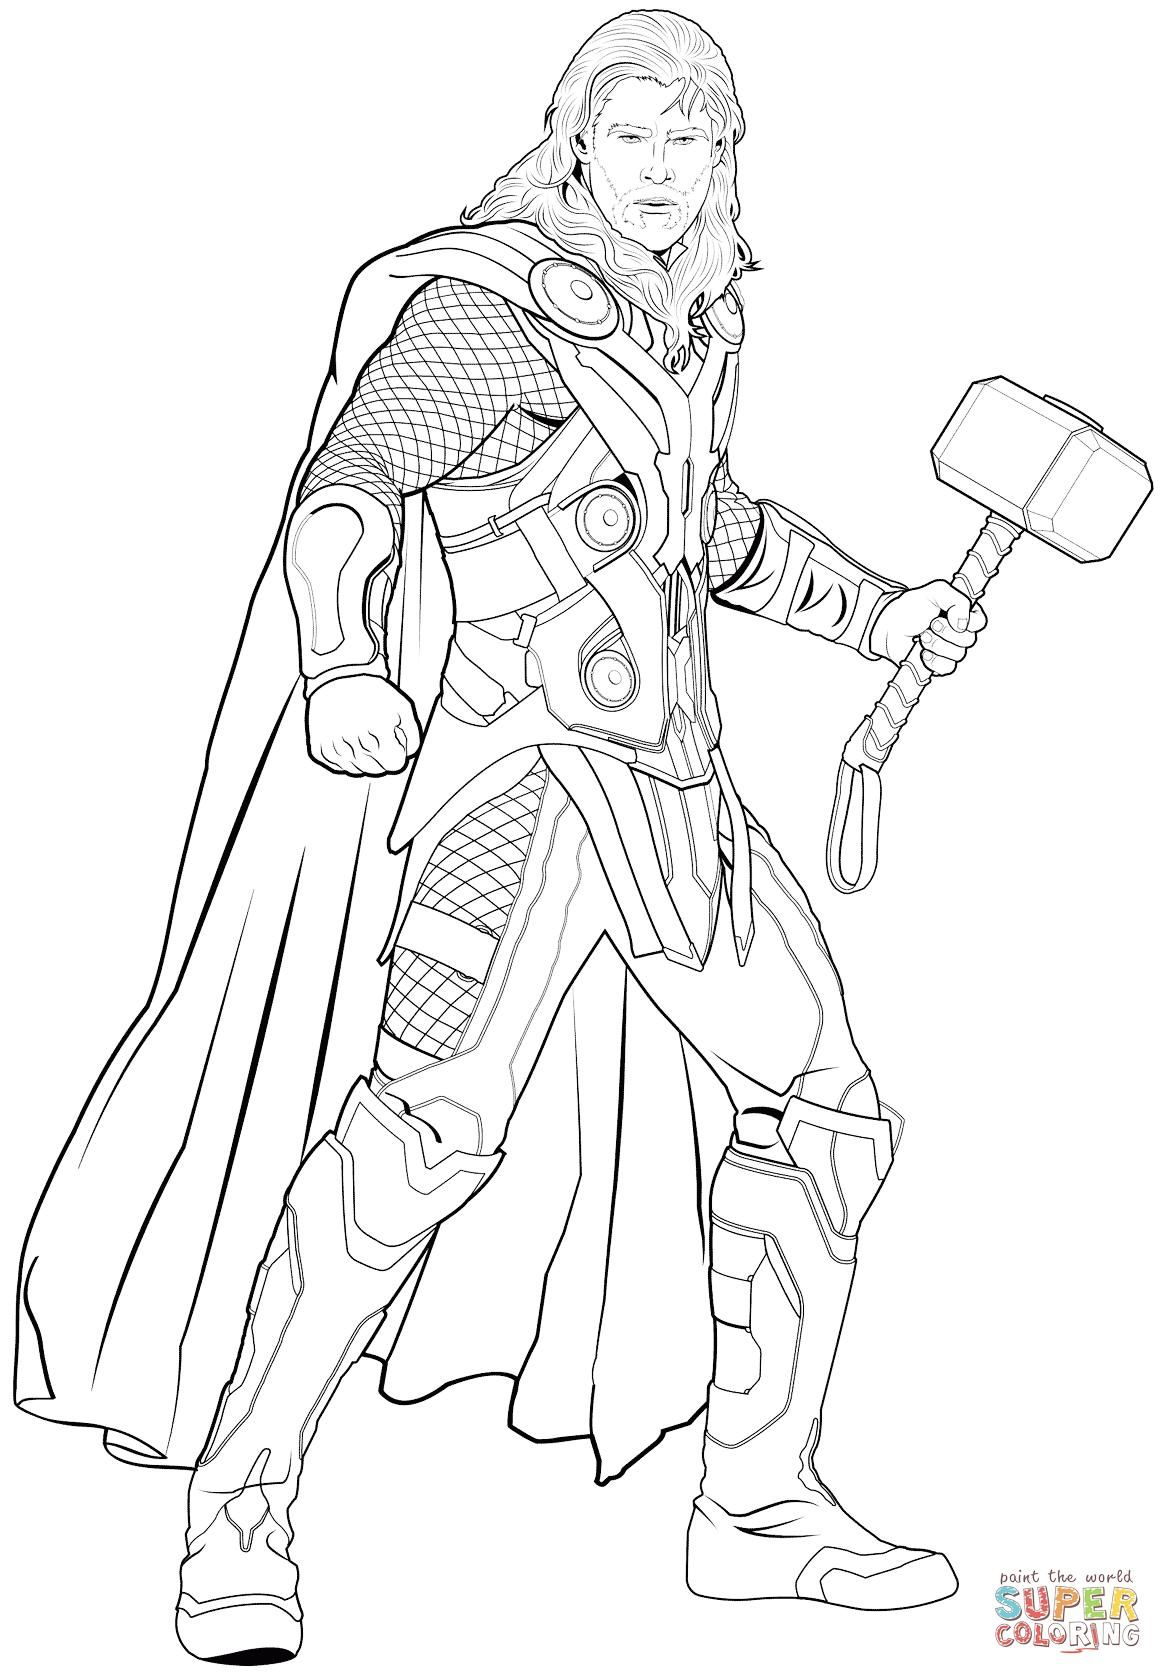 It's just an image of Handy Avengers Coloring Pages Printable